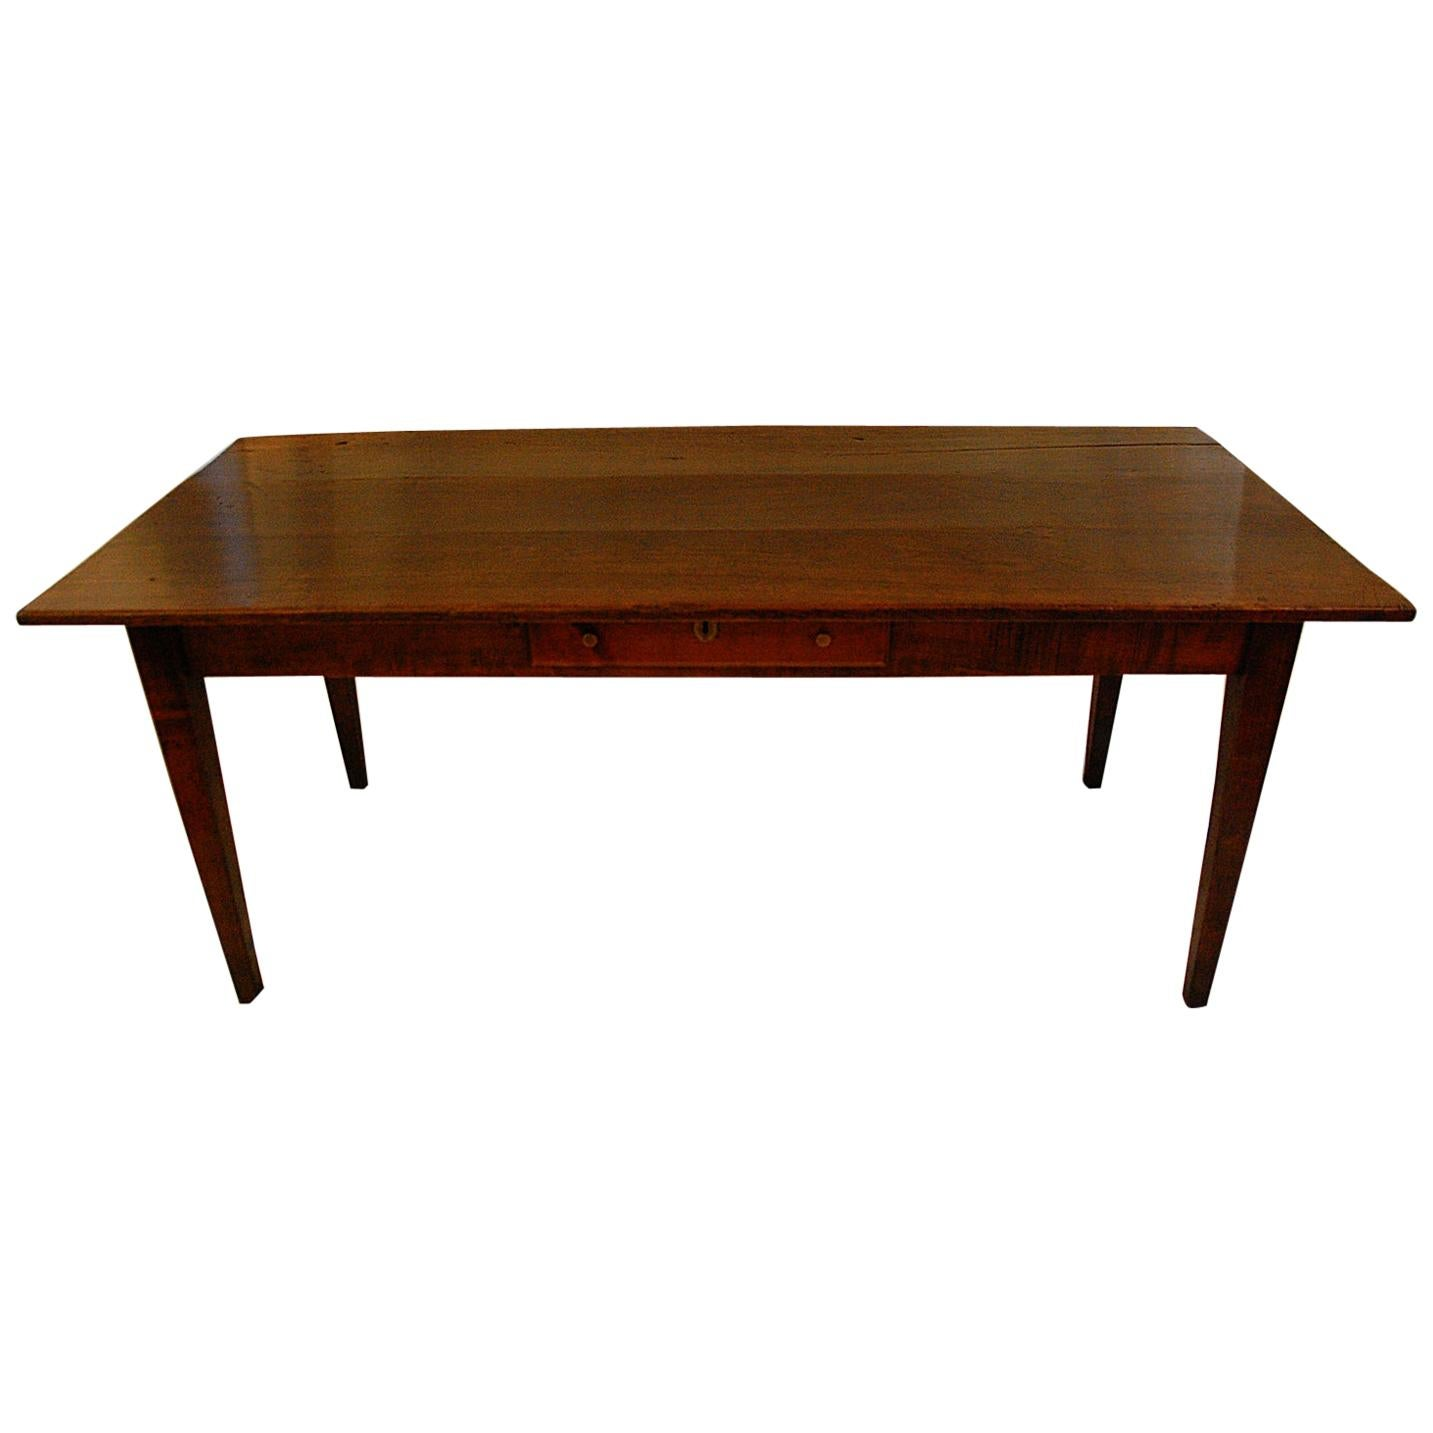 French Provincial Mid-19th Century Cherry Farmhouse Table